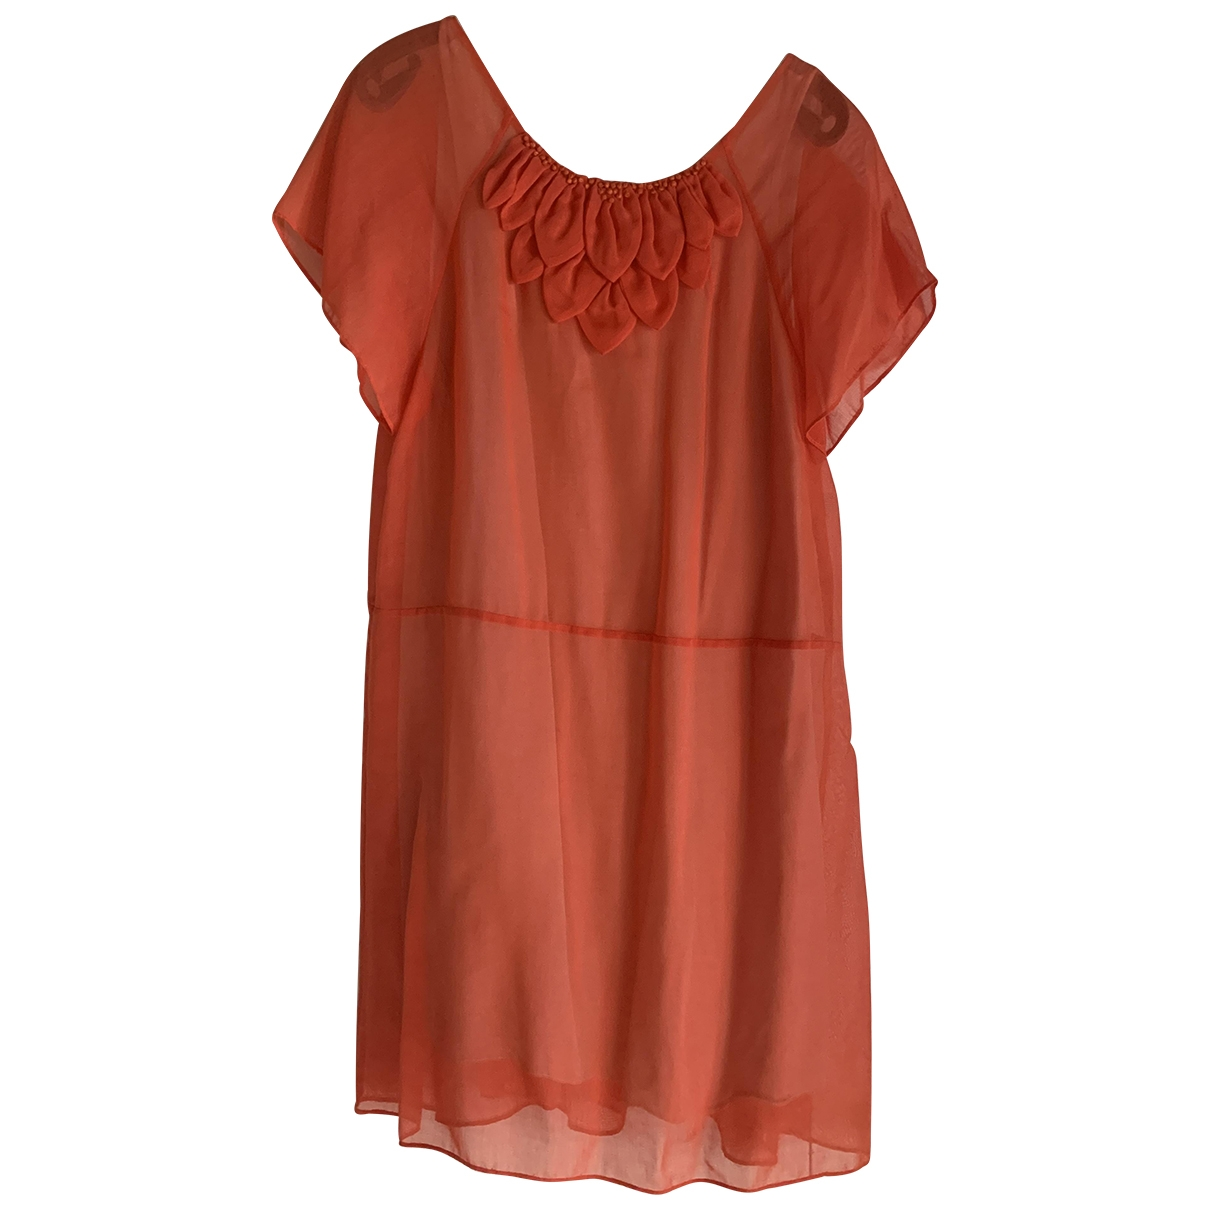 3.1 Phillip Lim \N Orange dress for Women 2 0-5